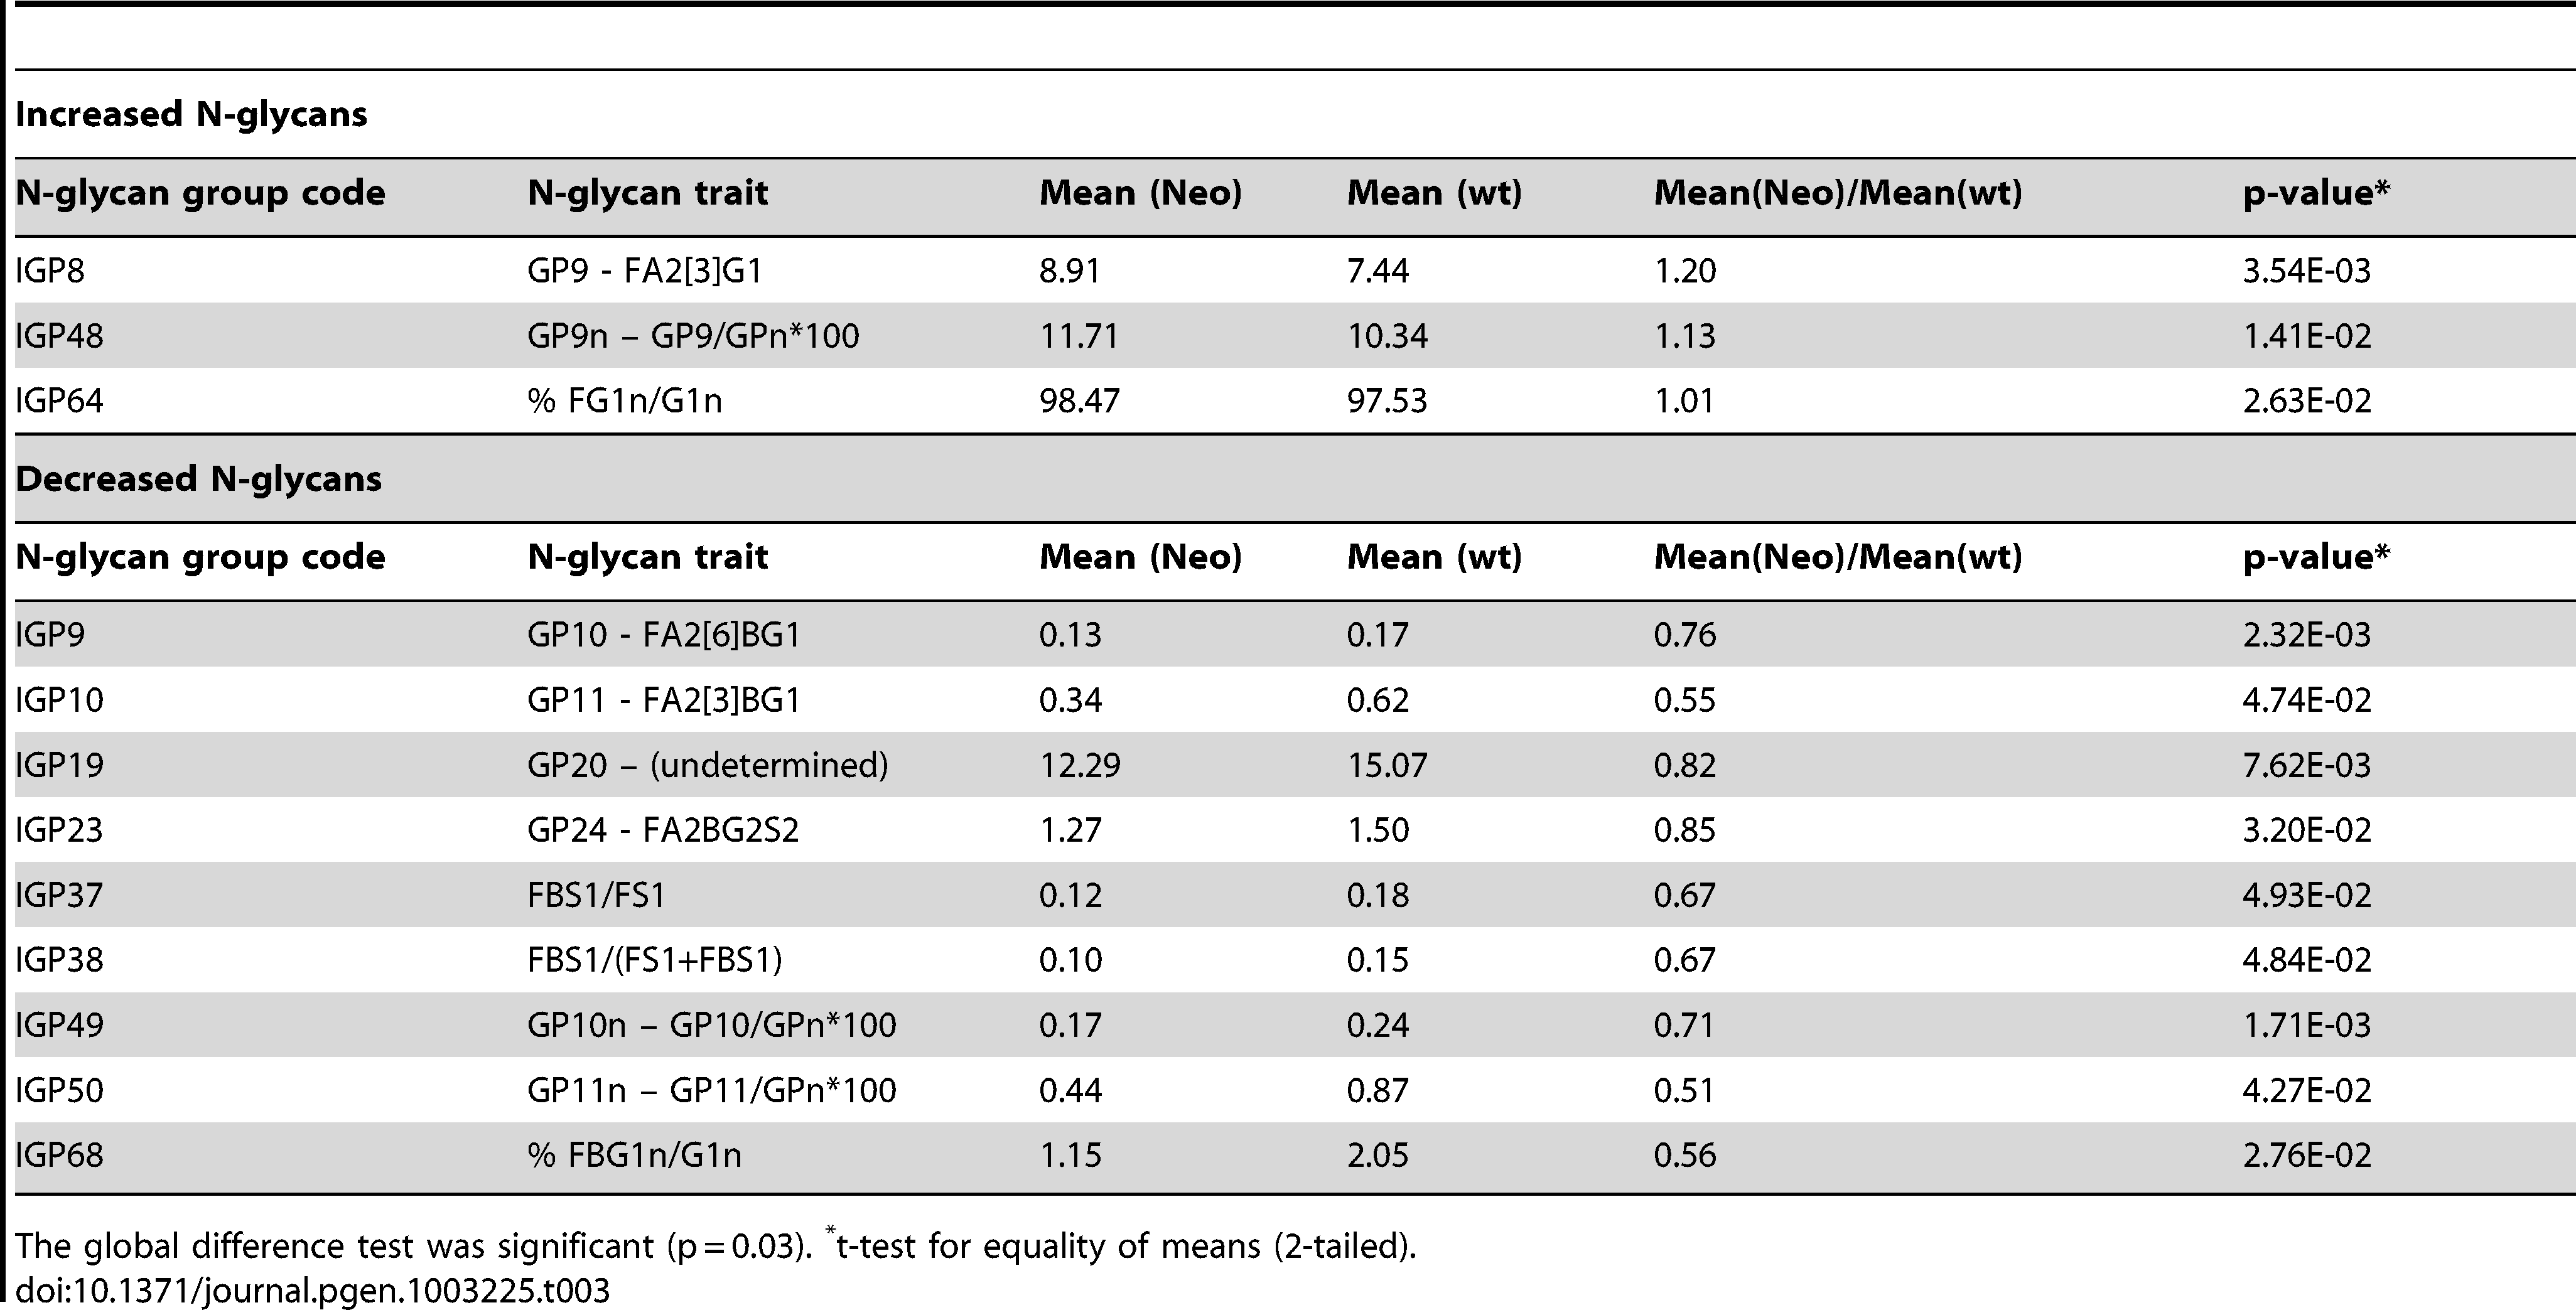 Twelve groups of IgG N-glycans (of 77 measured) that showed nominally significant difference (p&lt;0.05) in observed values between 5 mice that were heterozygous <i>Ikzf1</i> knock-outs (Neo) and 5 wild-type controls (wt).